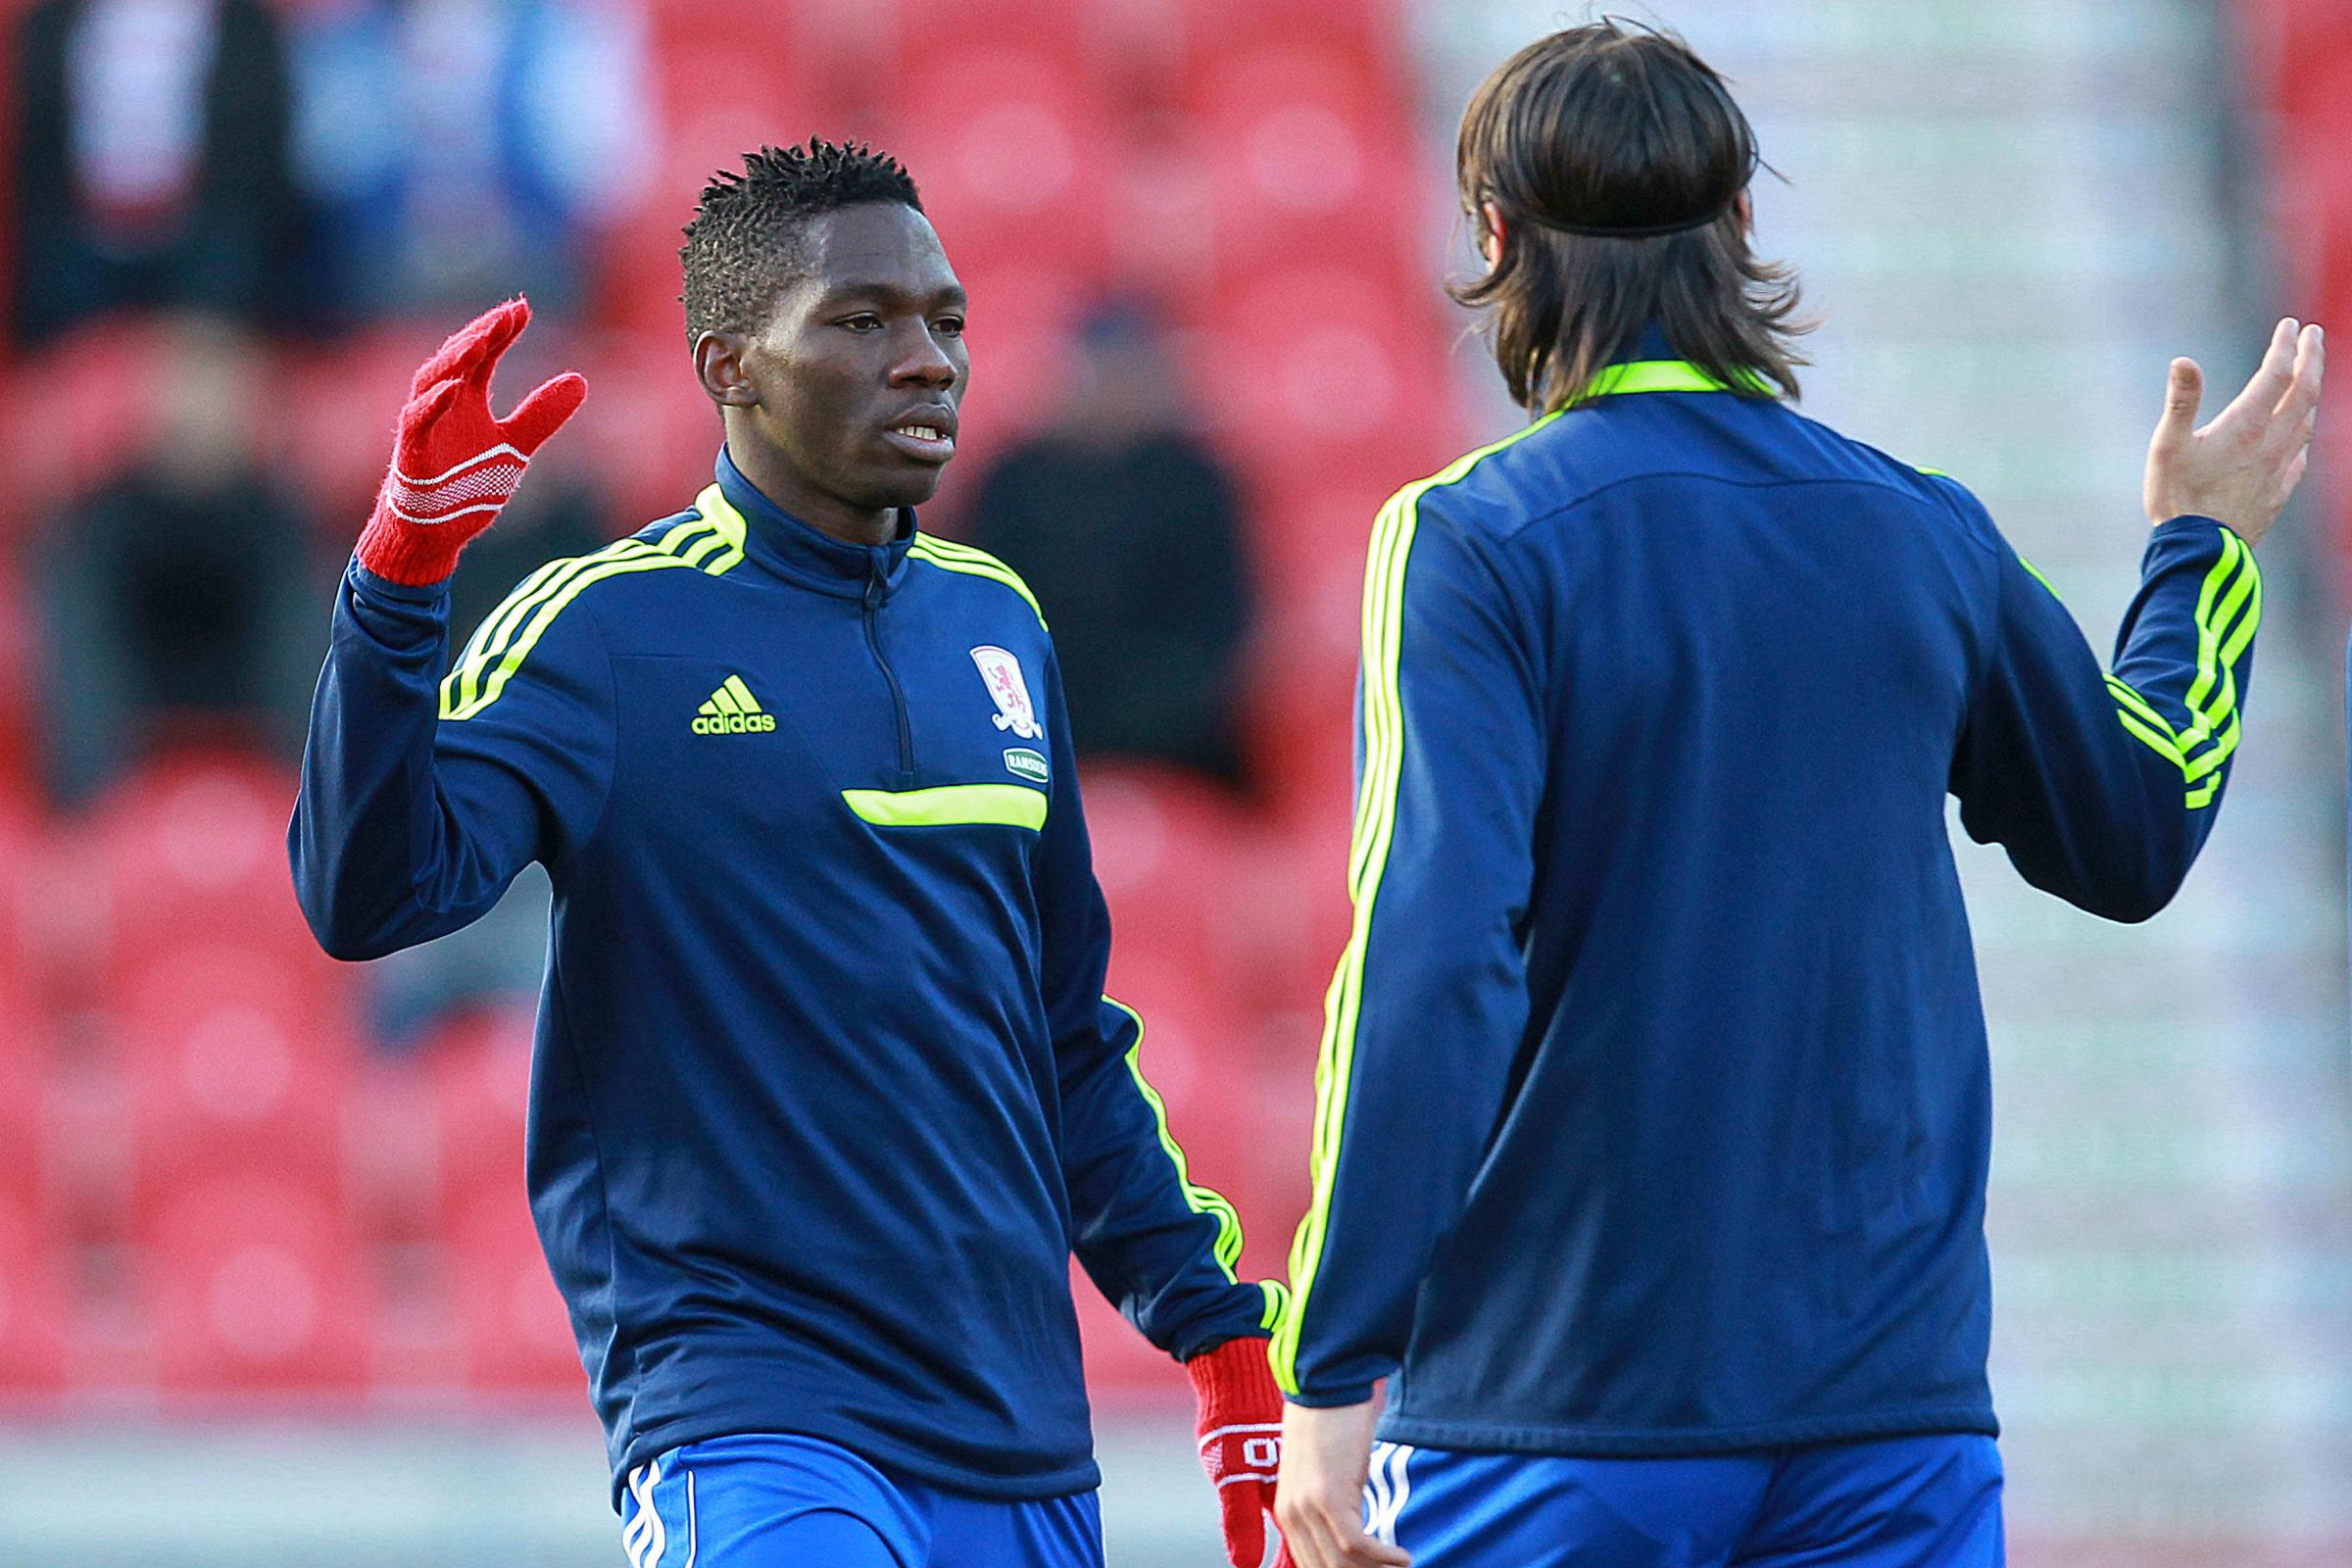 Boro boy: Kenneth Omeruo is enjoying playing for Middlesbrough